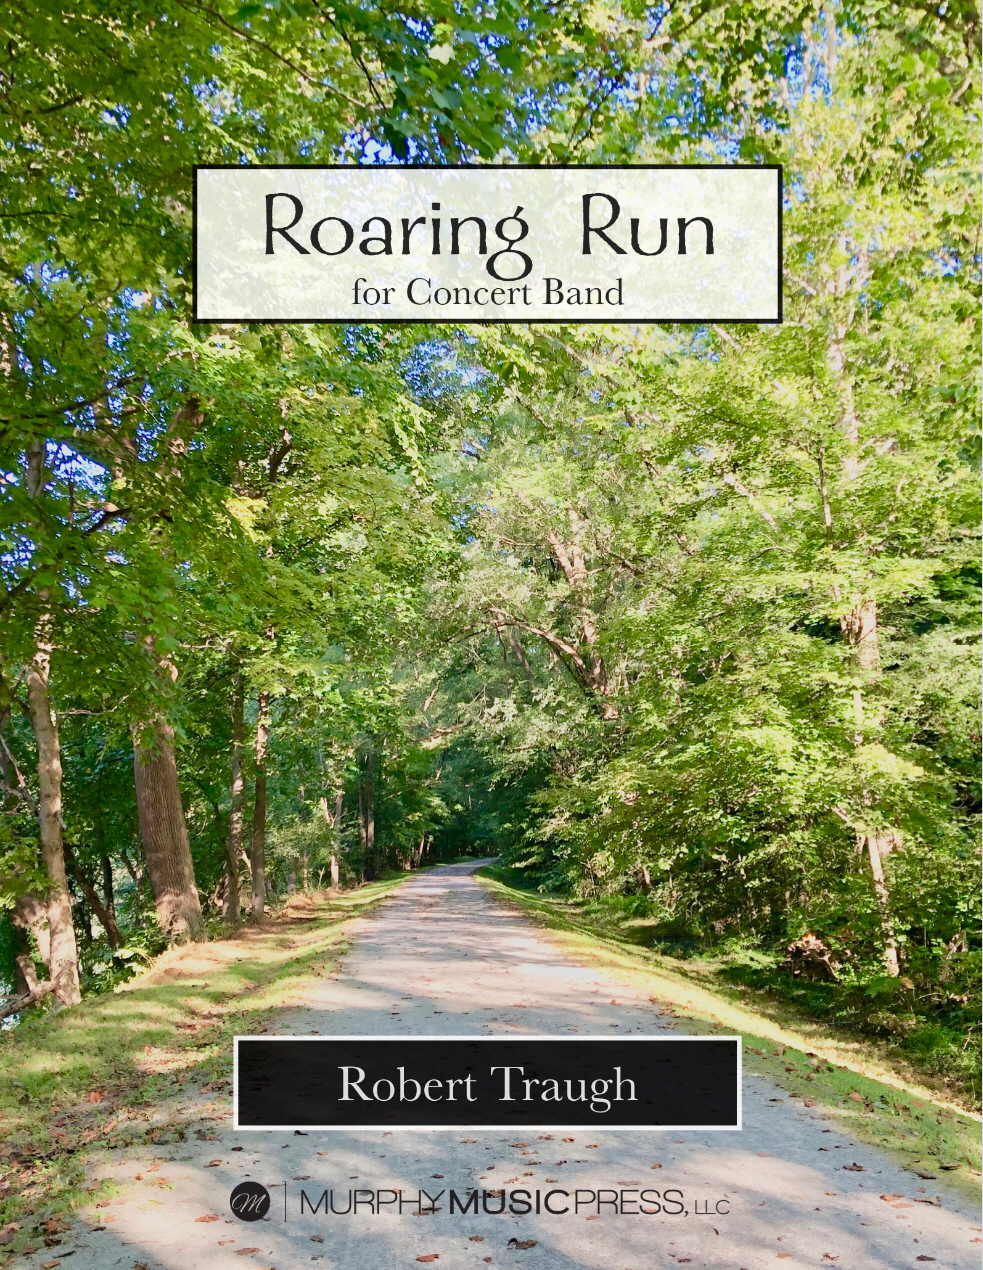 Roaring Run by Rob Traugh